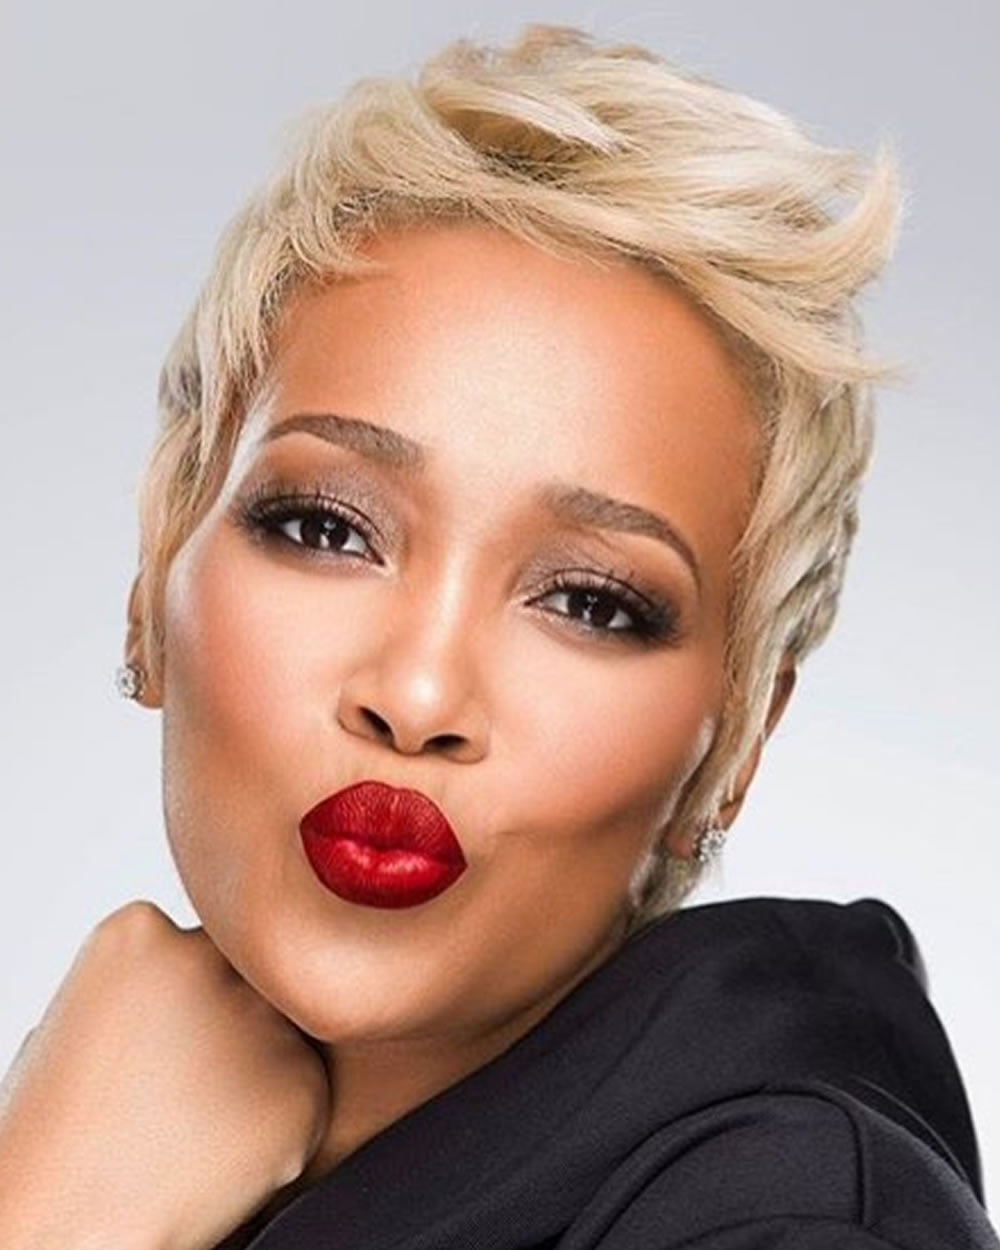 short hair styles women over 40 2018 haircuts for black 40 with hair 3335 | Short Haircuts for Black Women Over 40 with Fine Hair 17